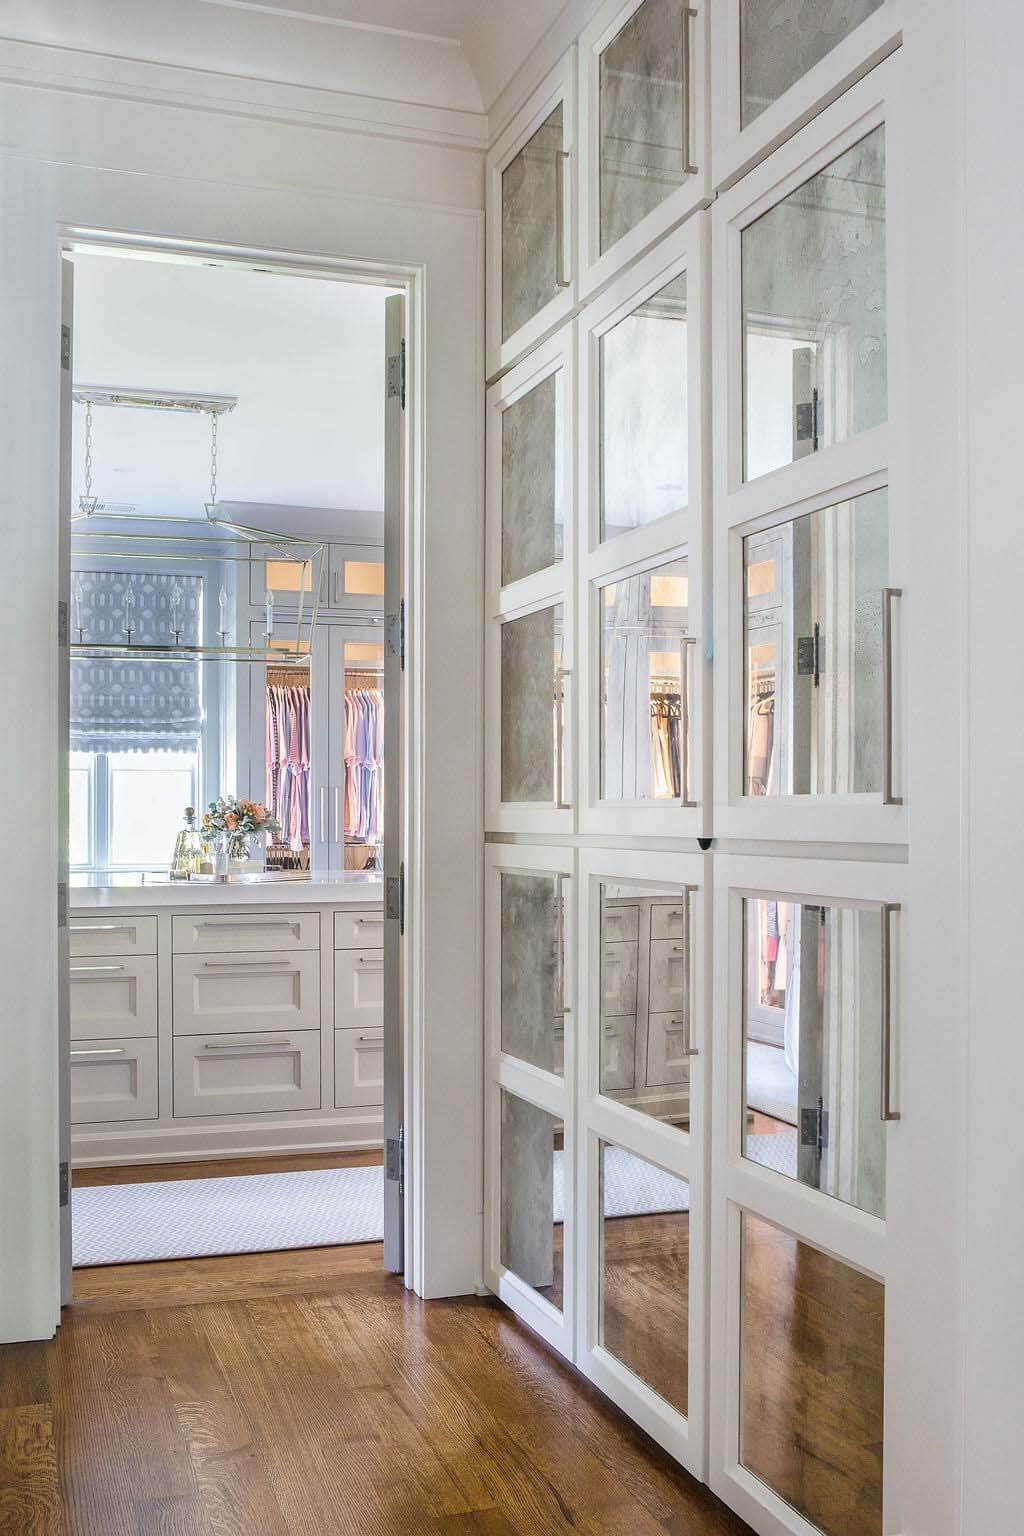 Entry way with mirrored luggage storage